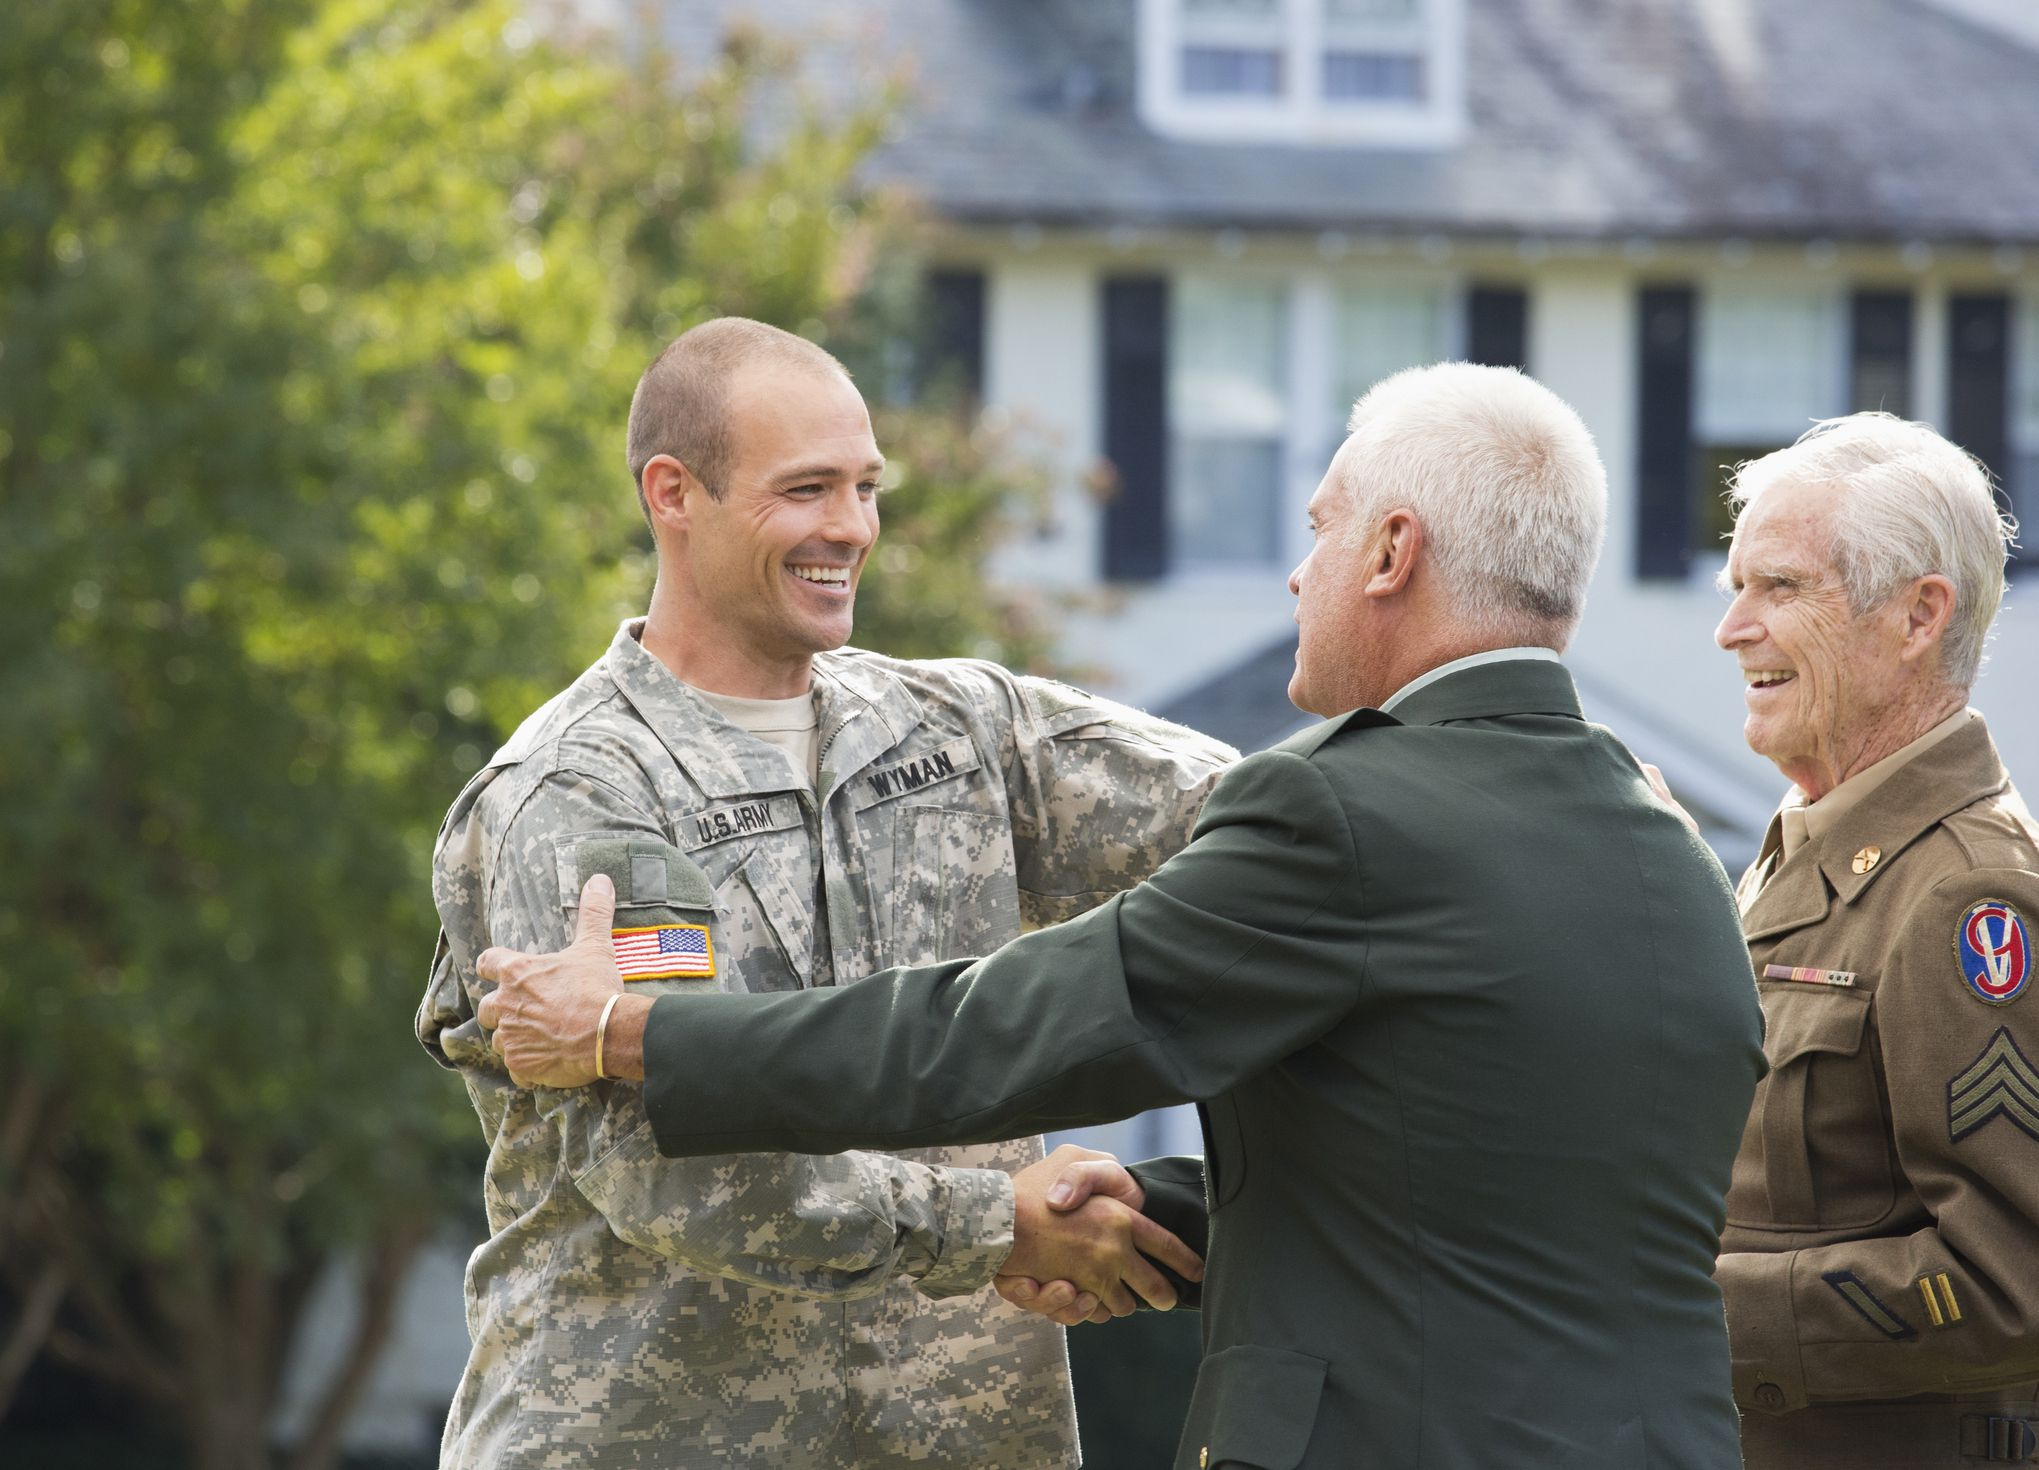 Retired military dating sites